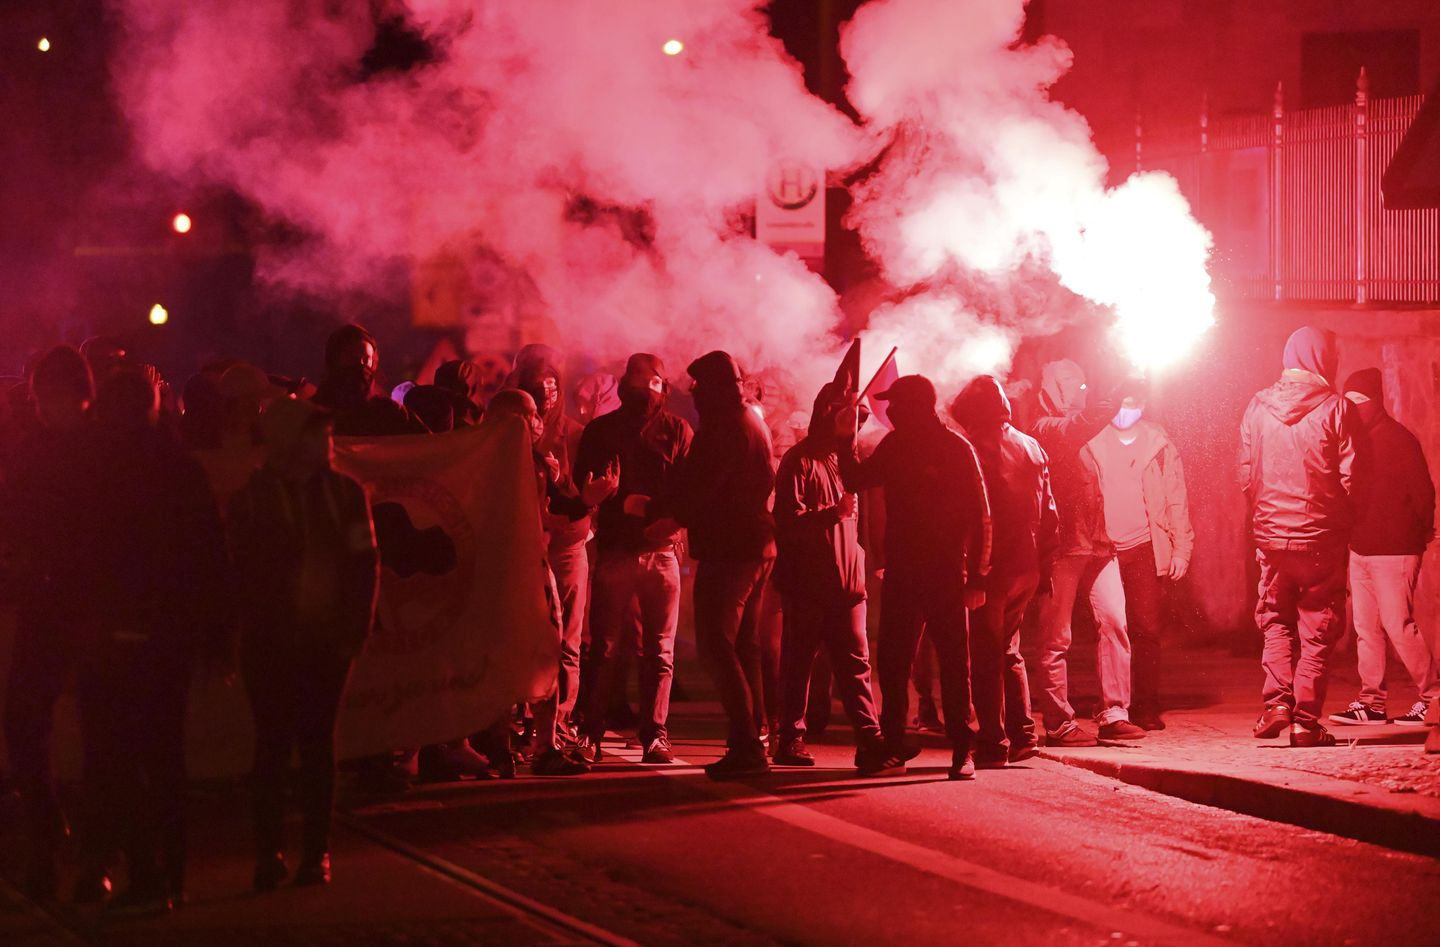 Germany: Protesters clash with police in city of Leipzig